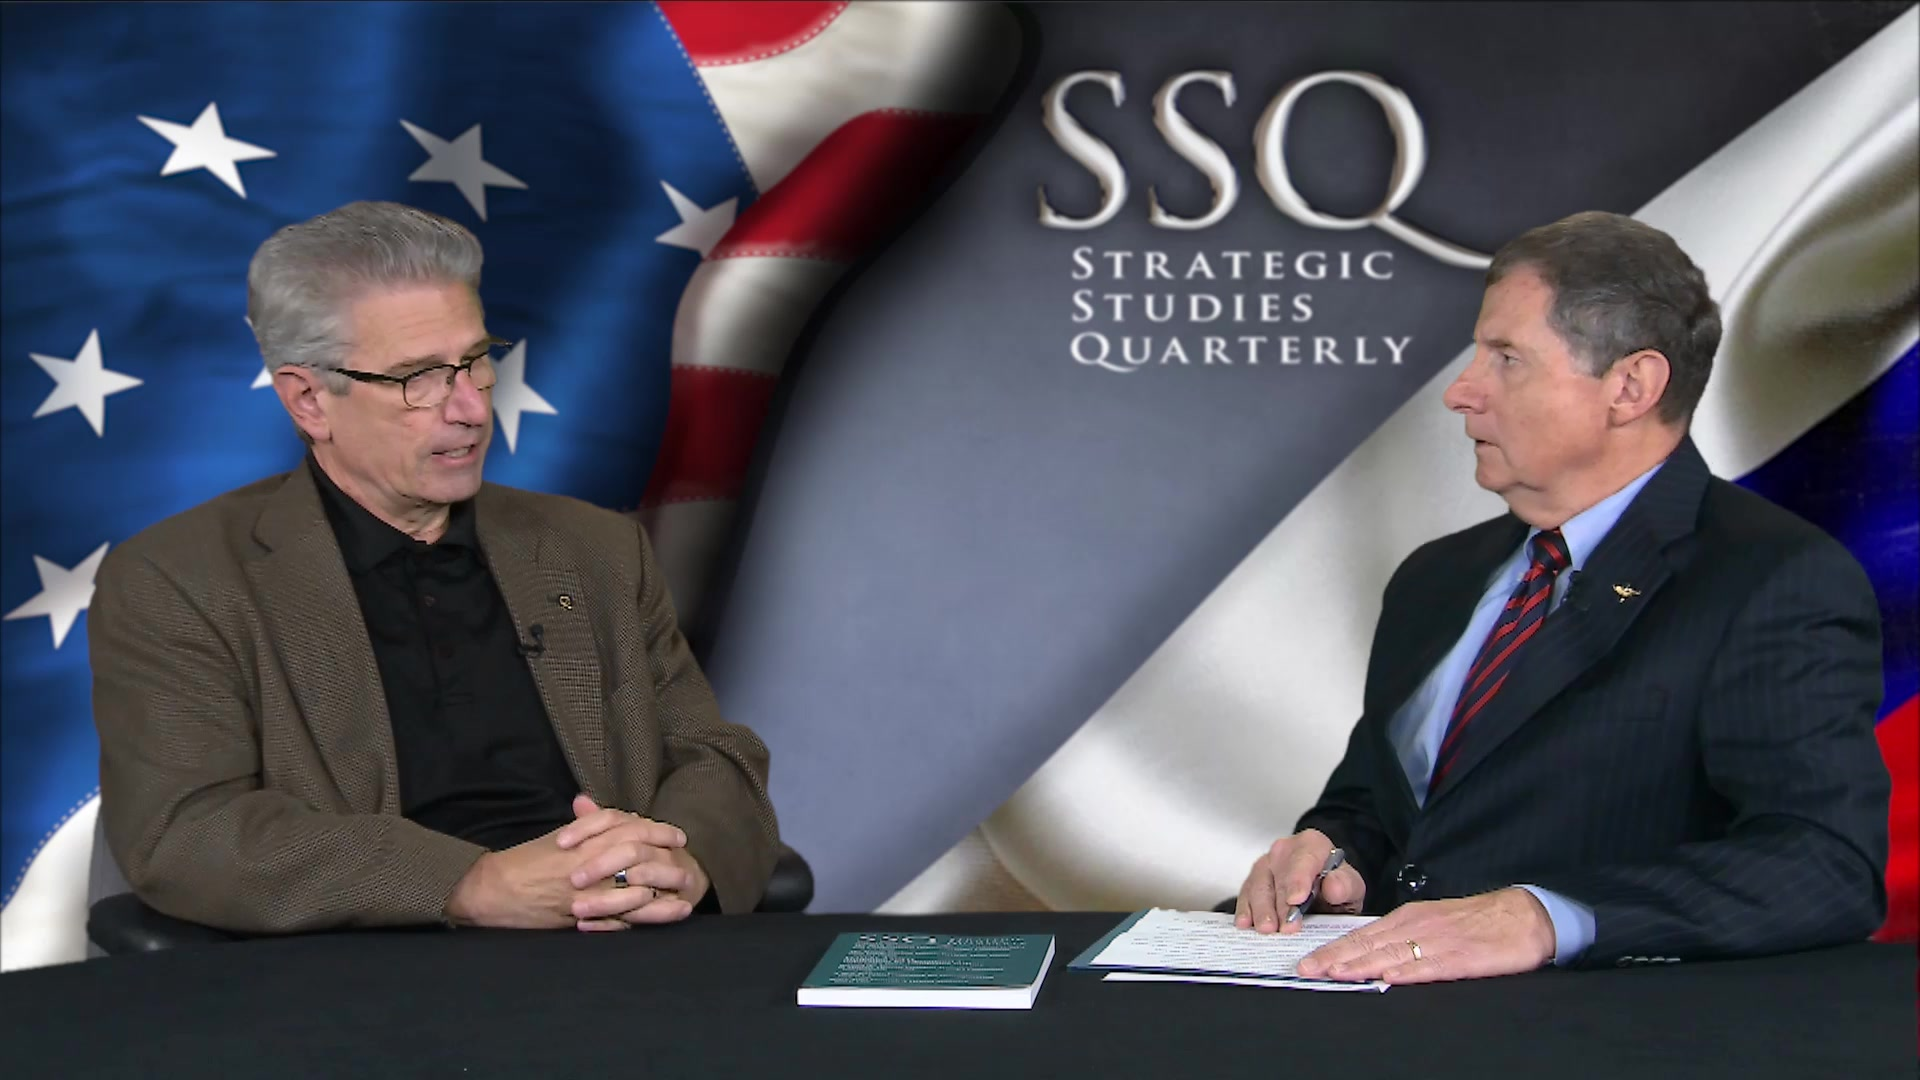 Michael Guillot,  editor of SSQ Journal interviews Dr. Conversino a member of Air University Faculty on the subject of U.S. and Russia relations.